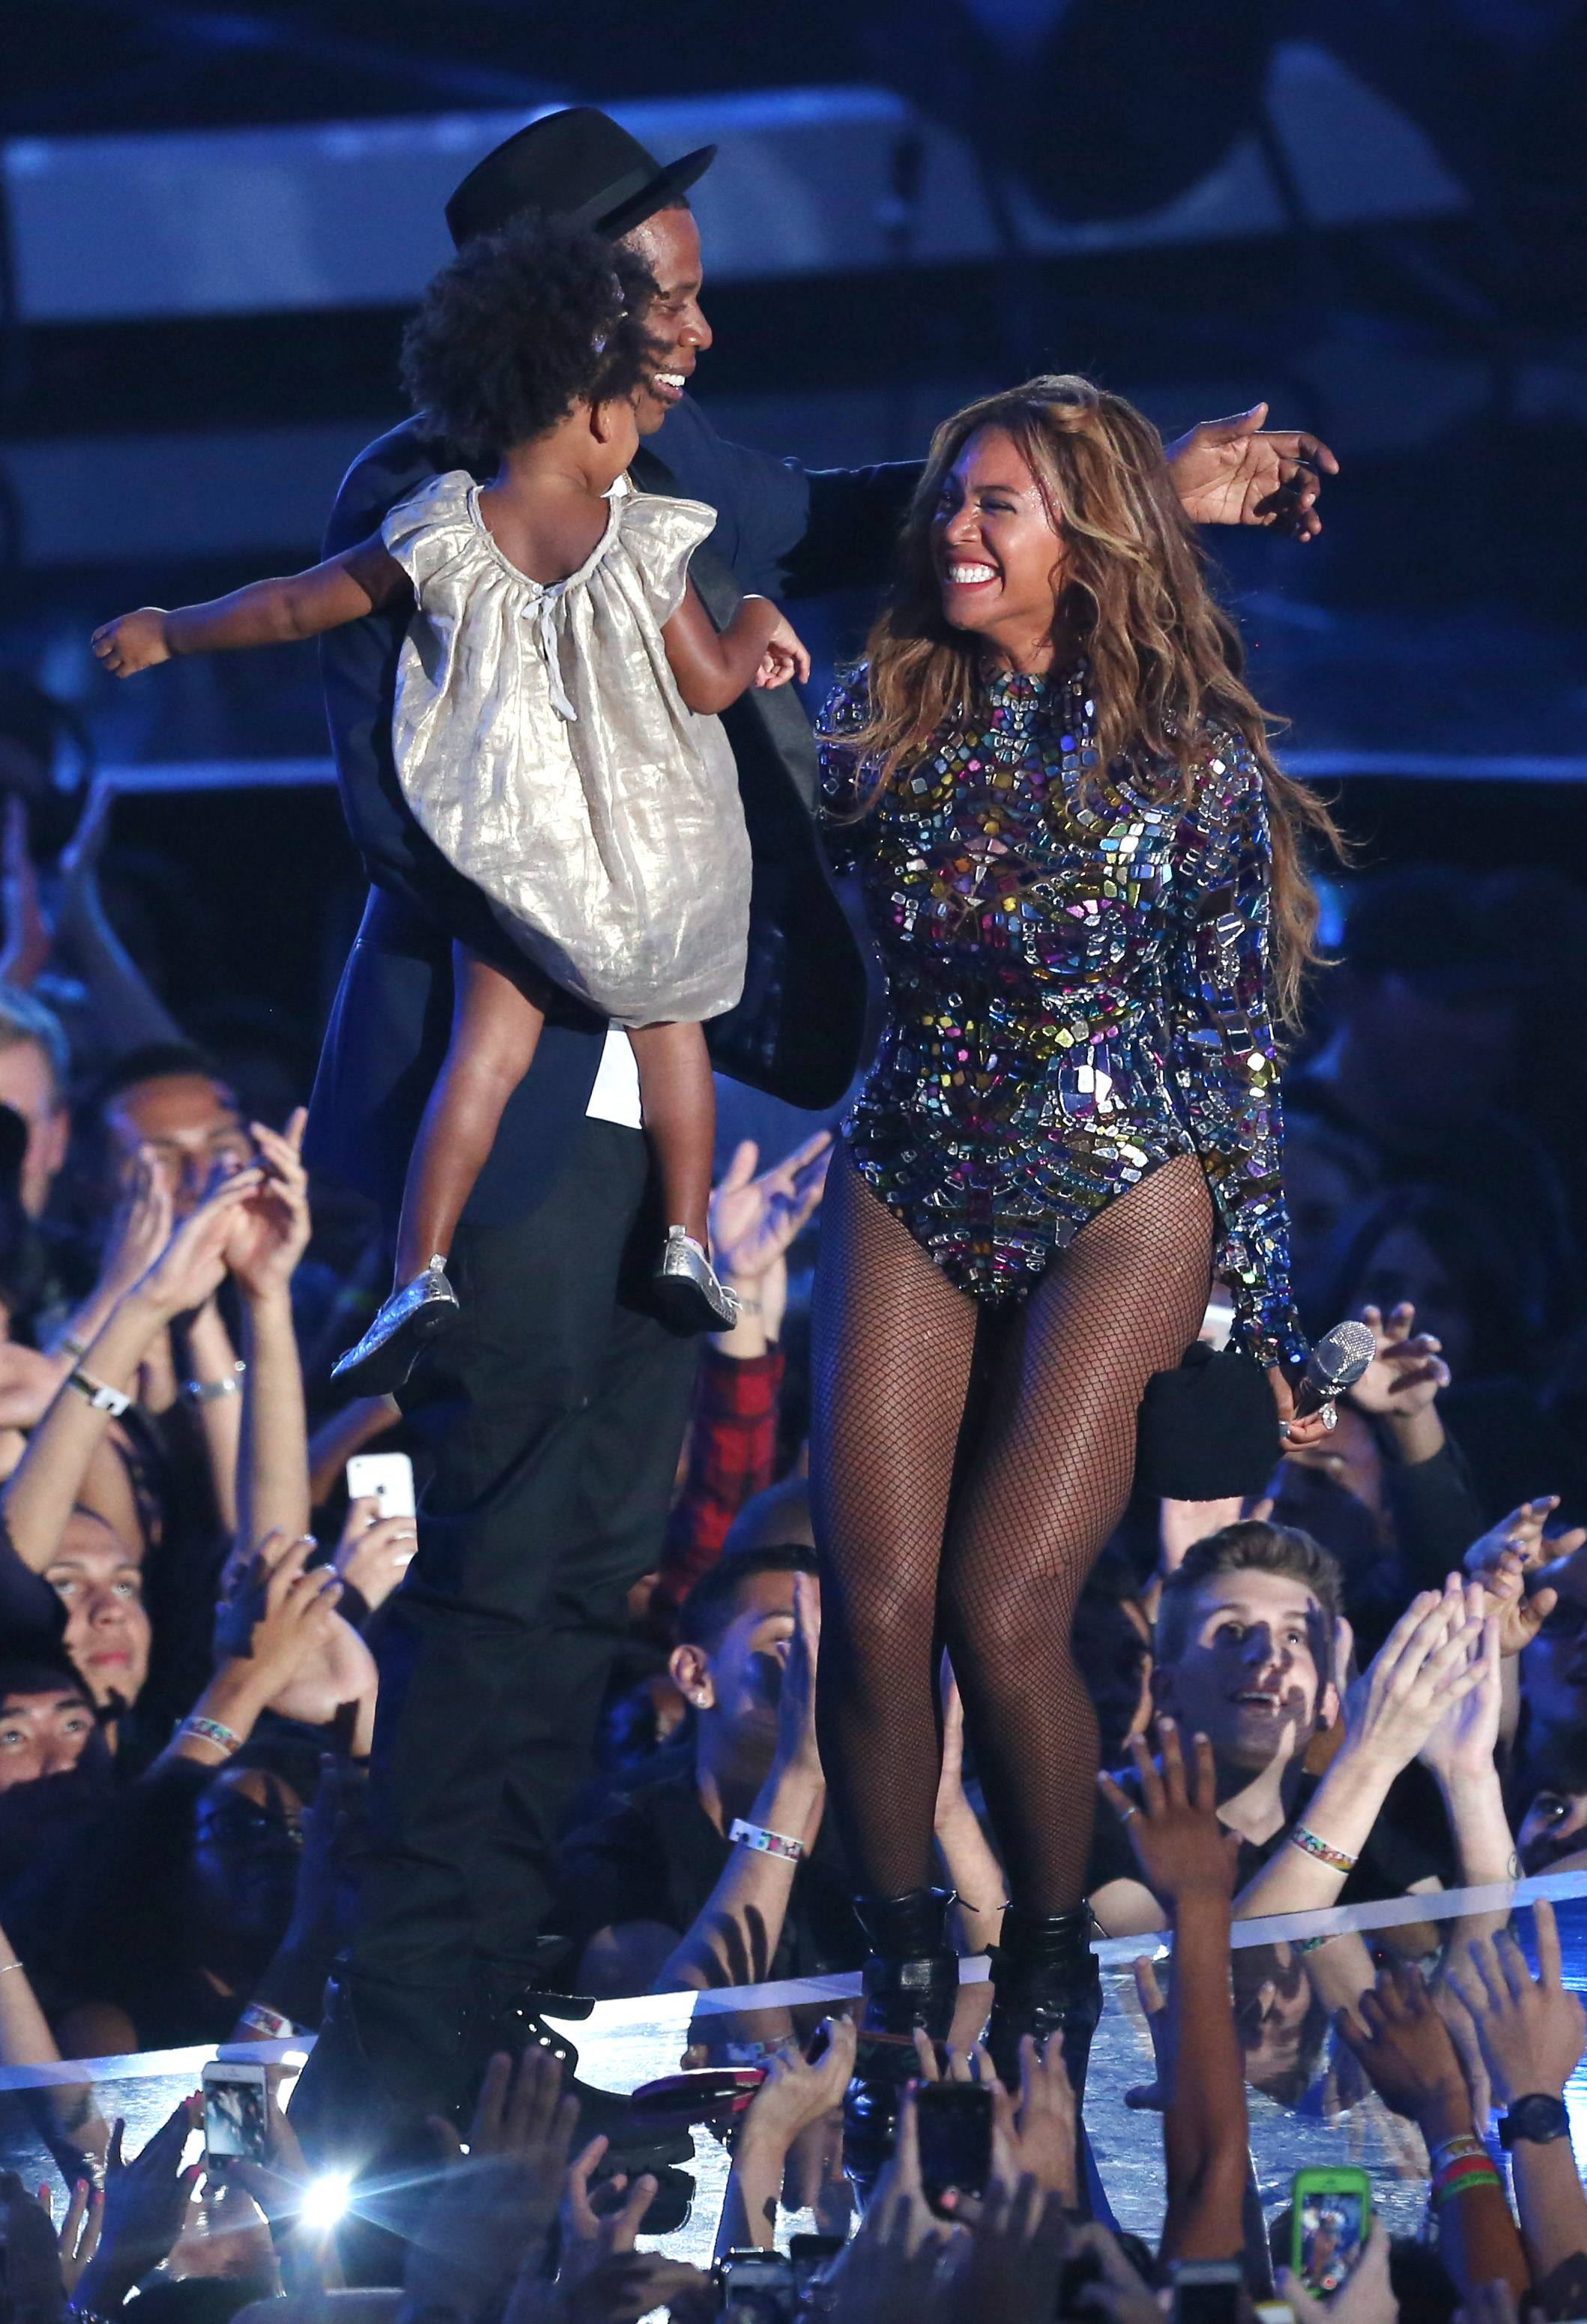 Beyonce accepts the Video Vanguard Award at the MTV Video Music Awards on Sunday presented to her by her duaghter, Blue Ivy, and her husband, Jay-Z.